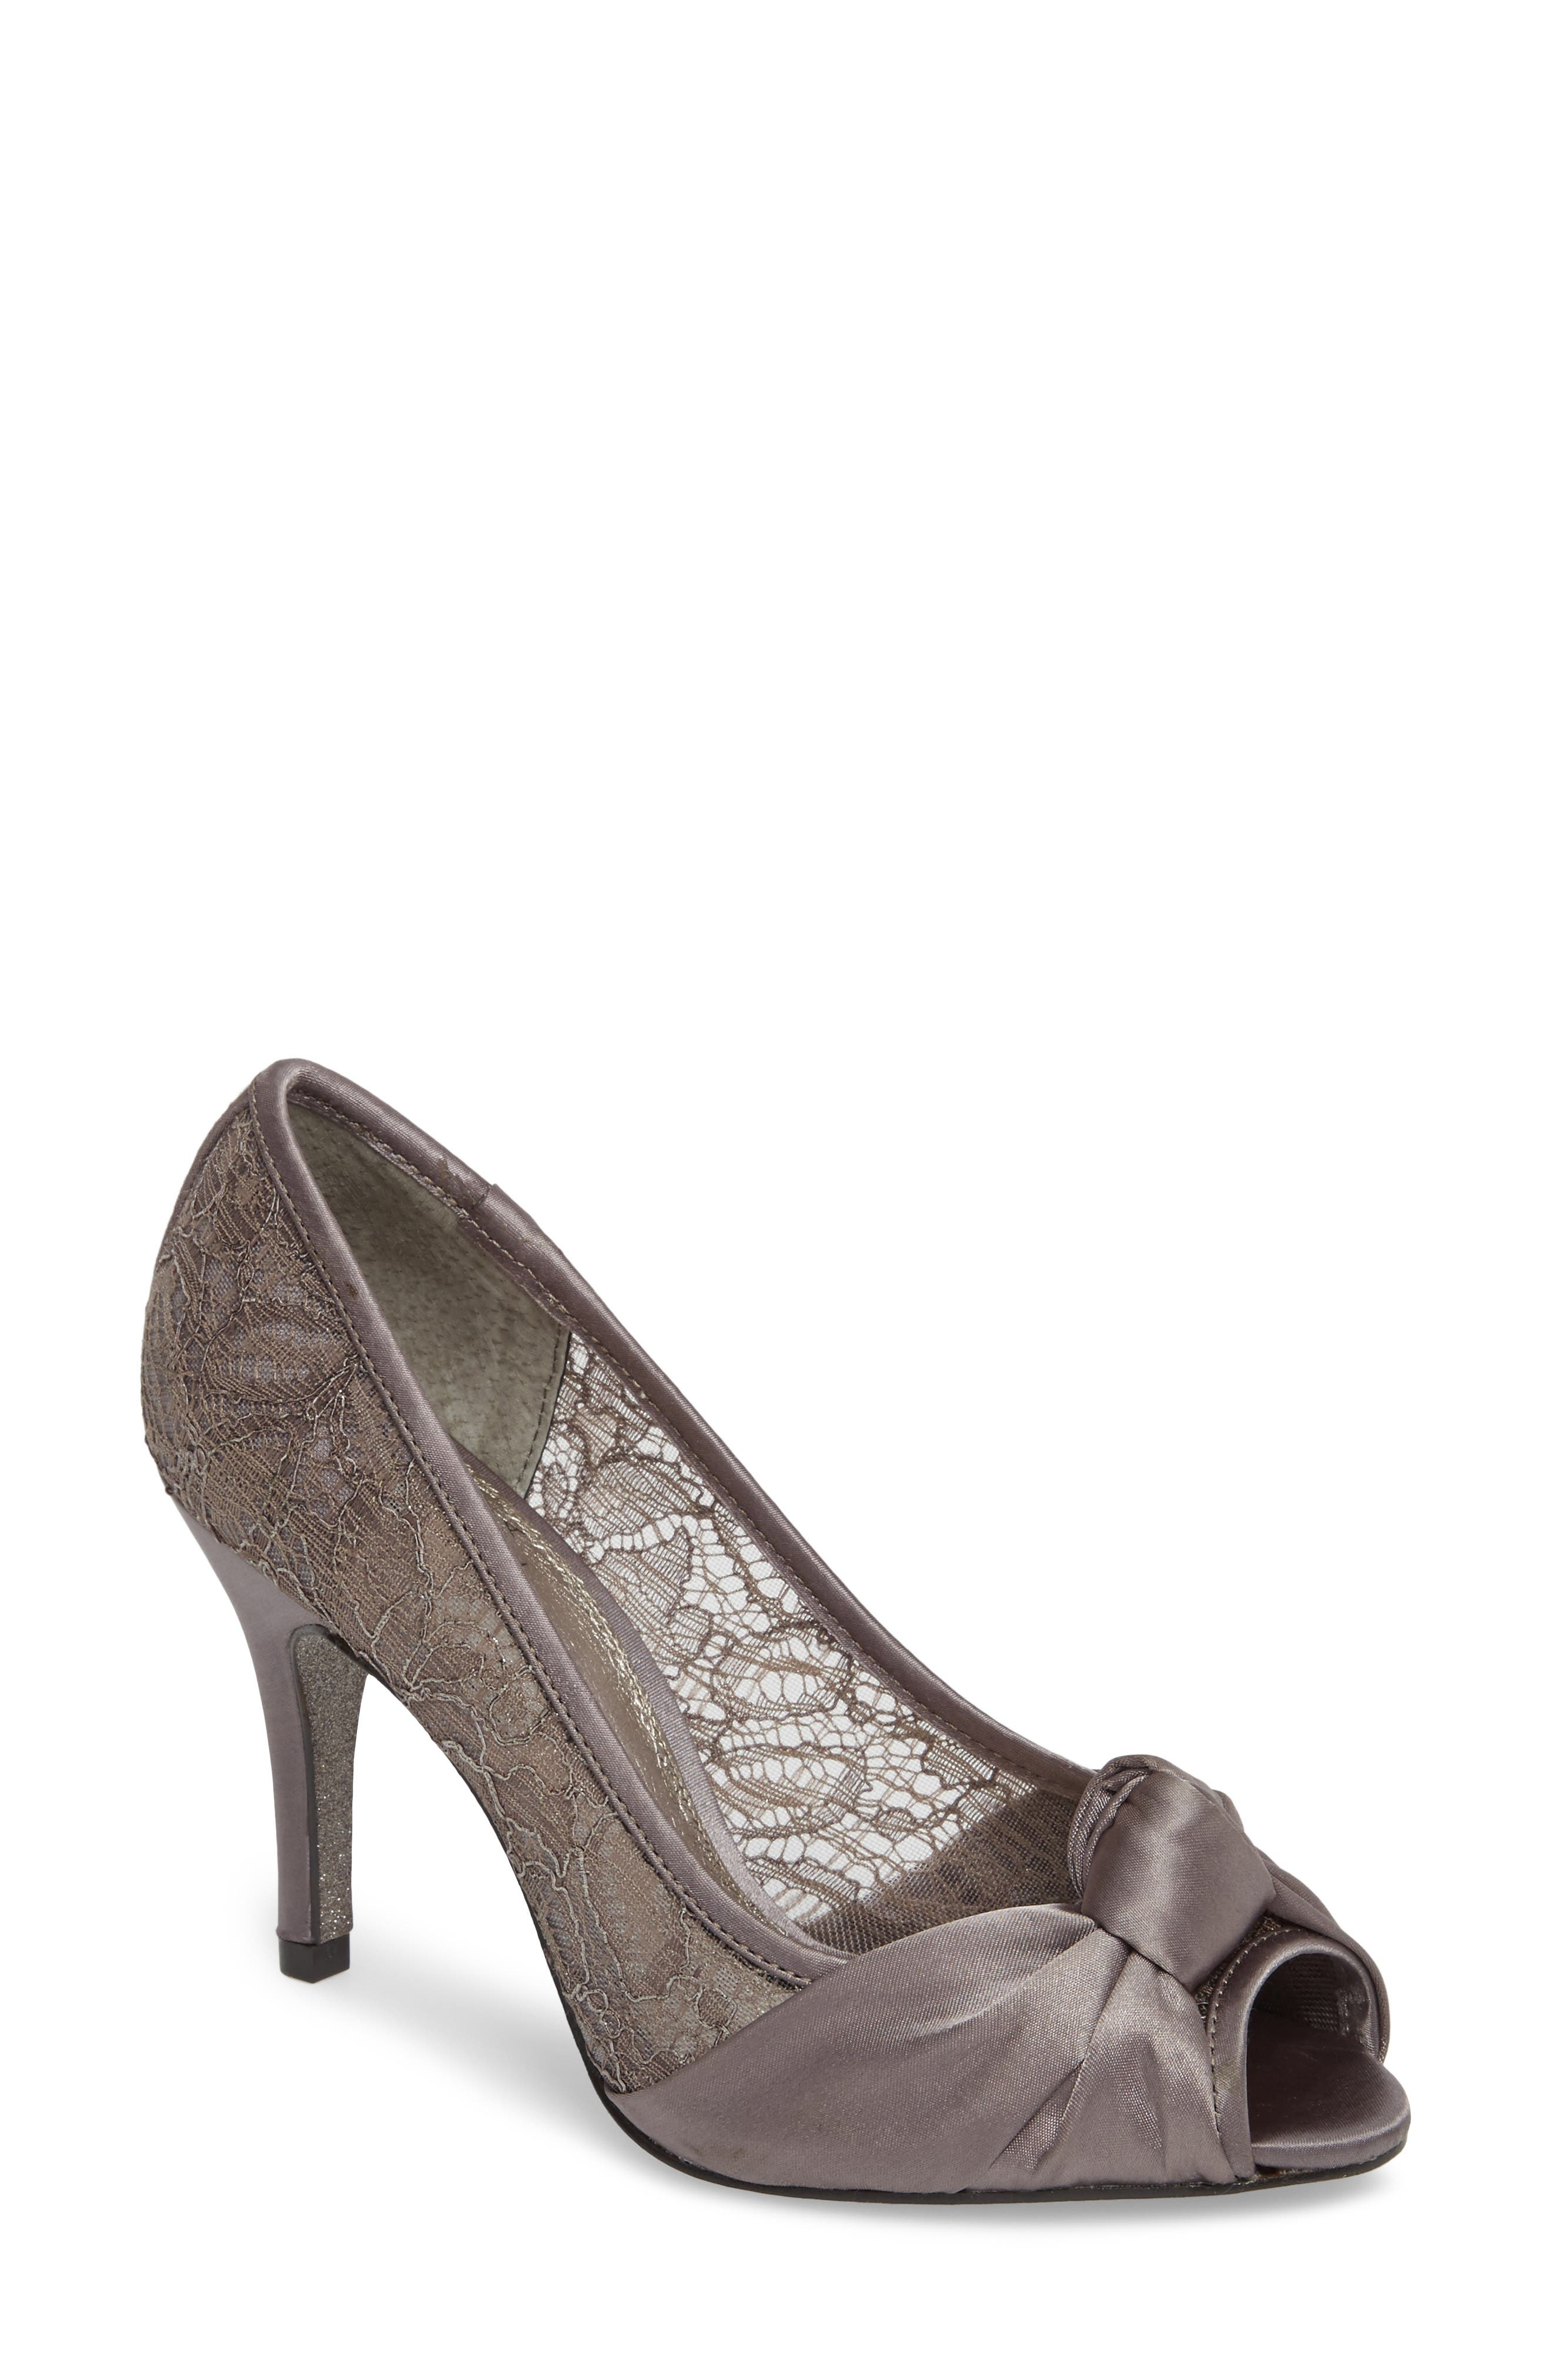 Francesca Knotted Peep Toe Pump,                         Main,                         color, Steel Satin